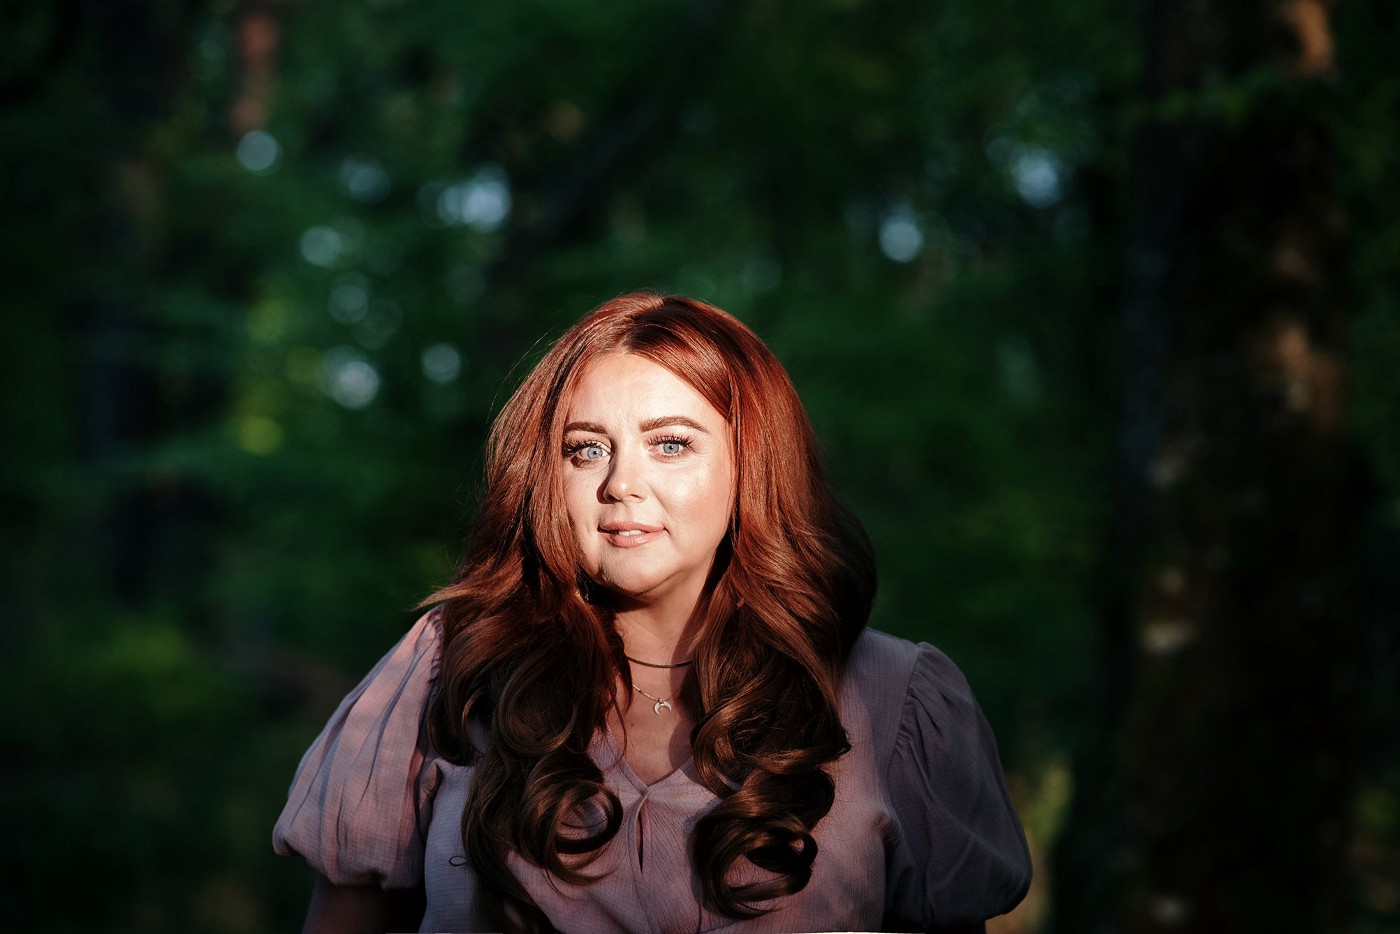 Close-up of attractive, vibrant woman in dusky pink blouse and long thick locks of red hair, standing in a shaded forest. Spotlight is on her face. By photographer Lisa McConnellogue. Ciara McCarron from Derry, Northern Ireland, is a Trauma-Informed Coach, Mentor & Therapist, Hypnotherapist and Founder of Redesign Your Vibe.